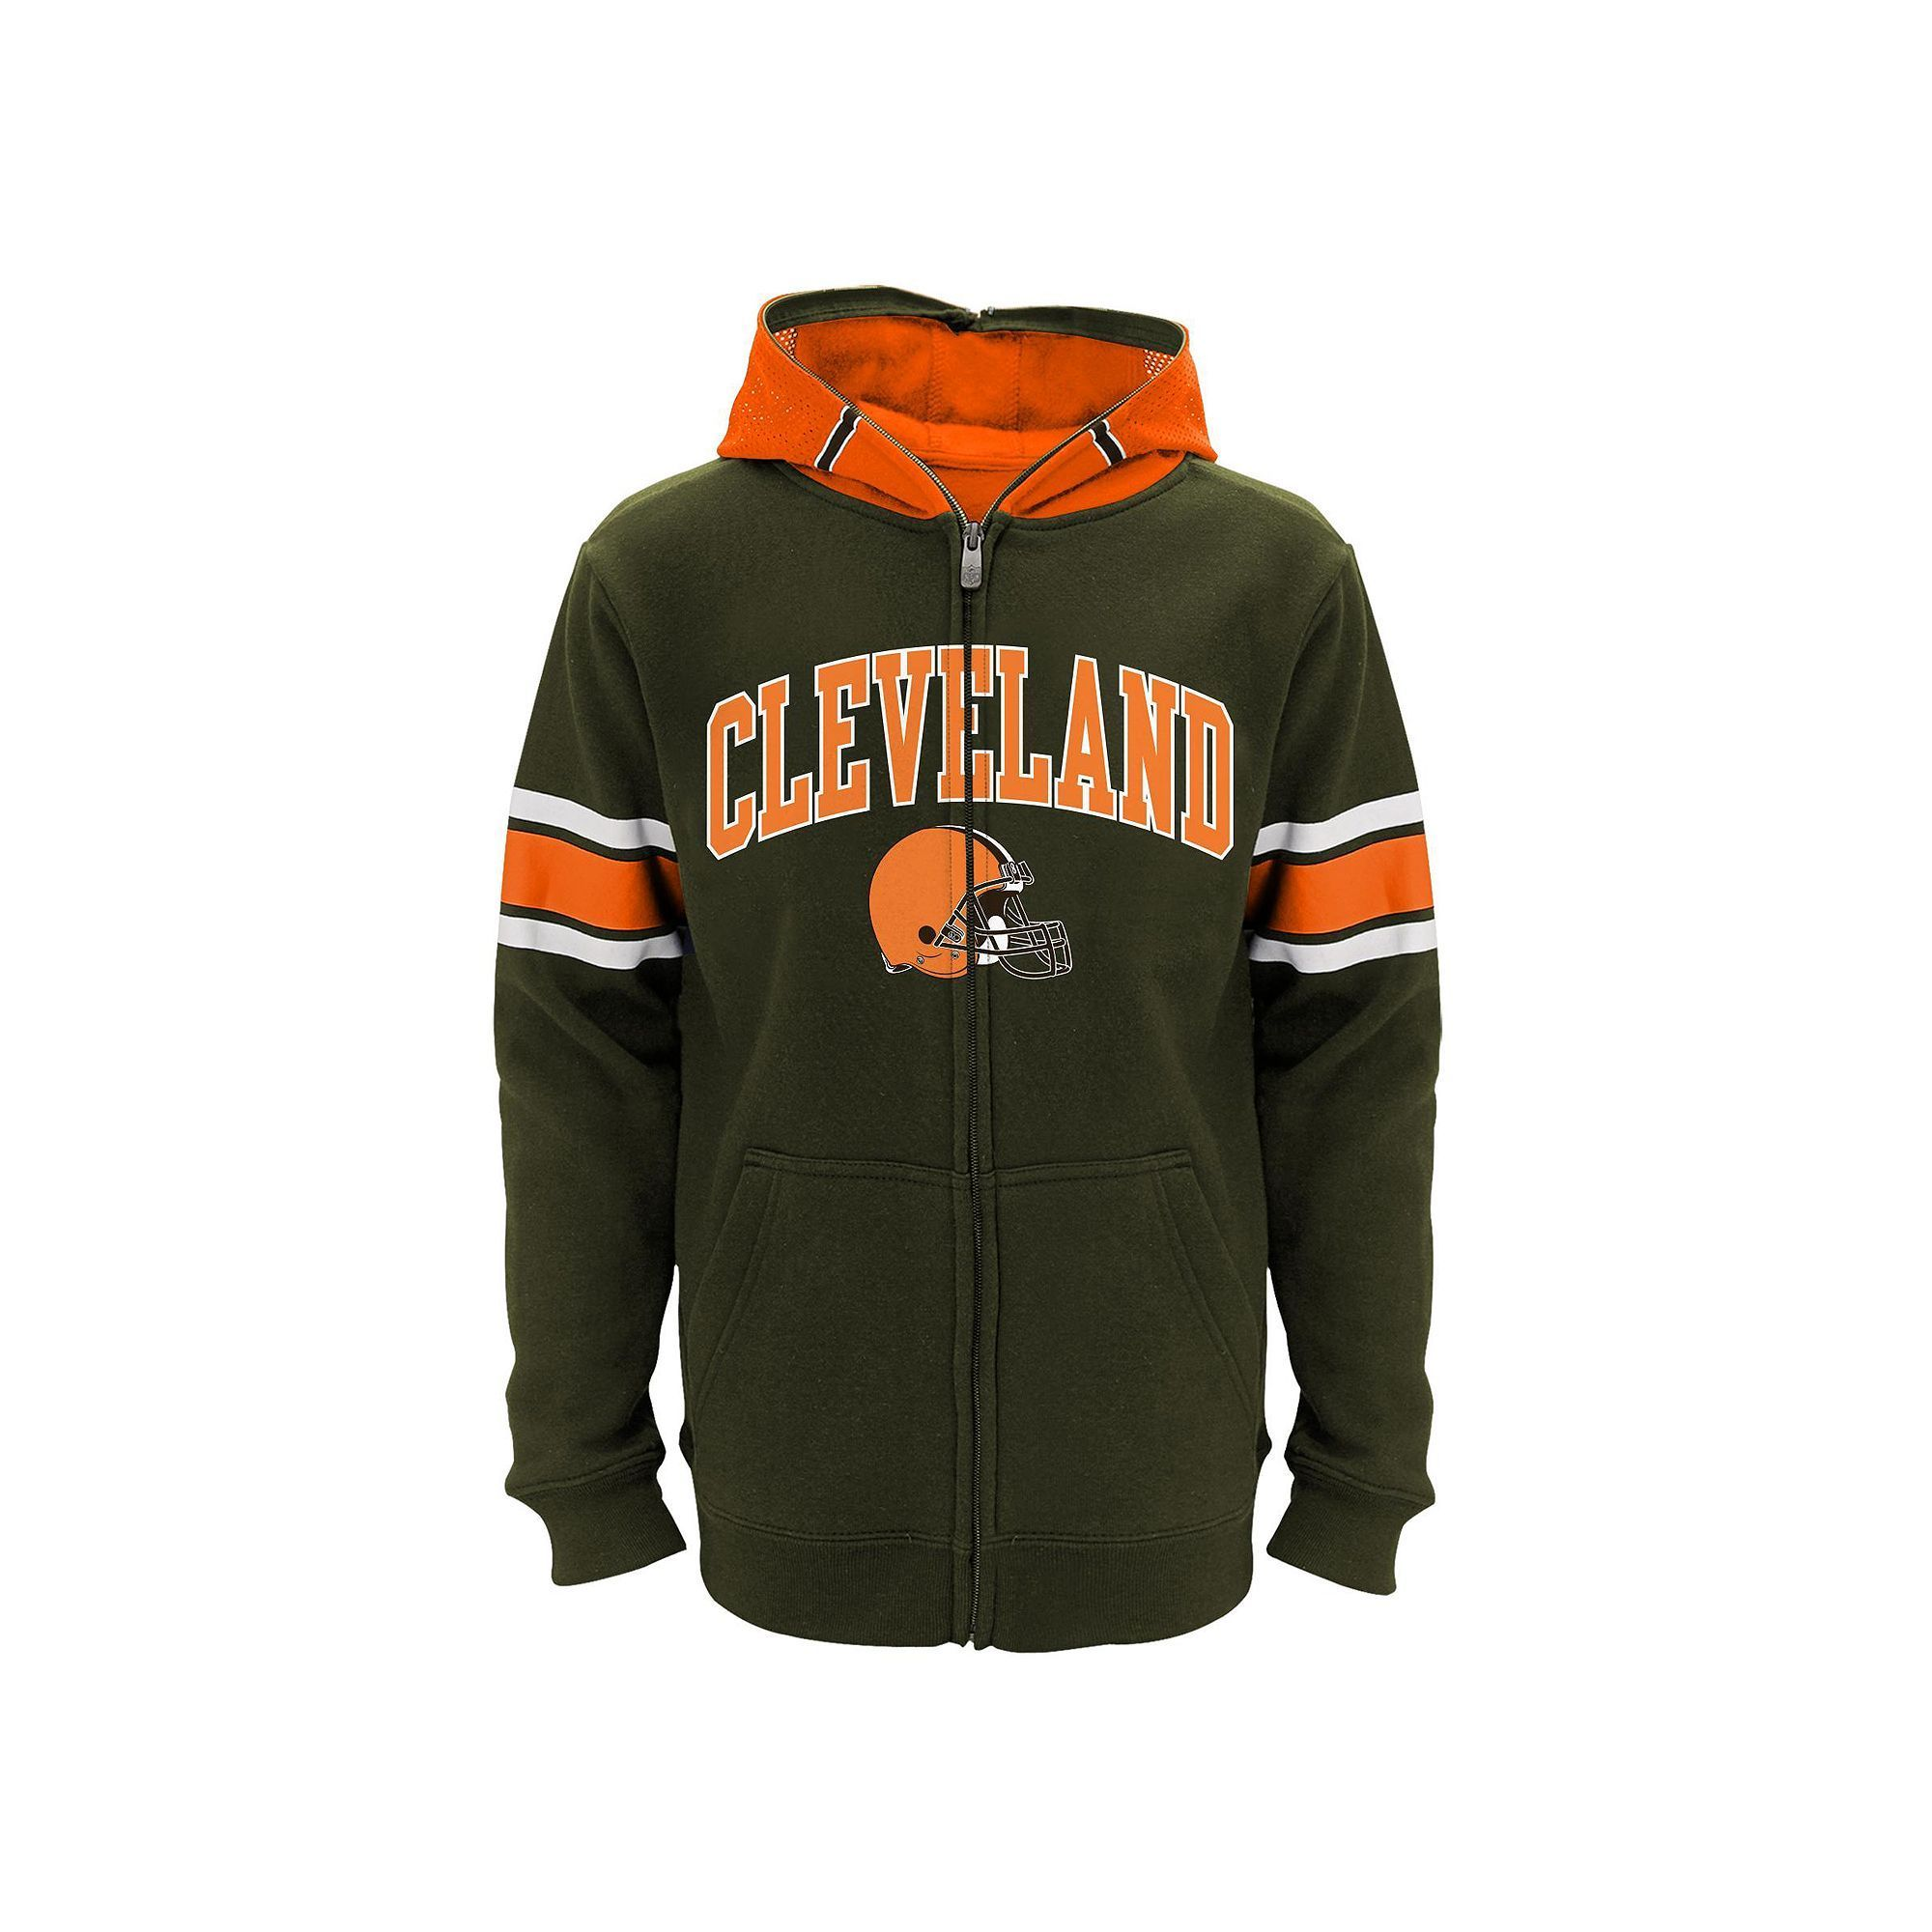 e7321024 Boys 8-20 Cleveland Browns Helmet Hoodie, Size: L(14/16), Brown ...